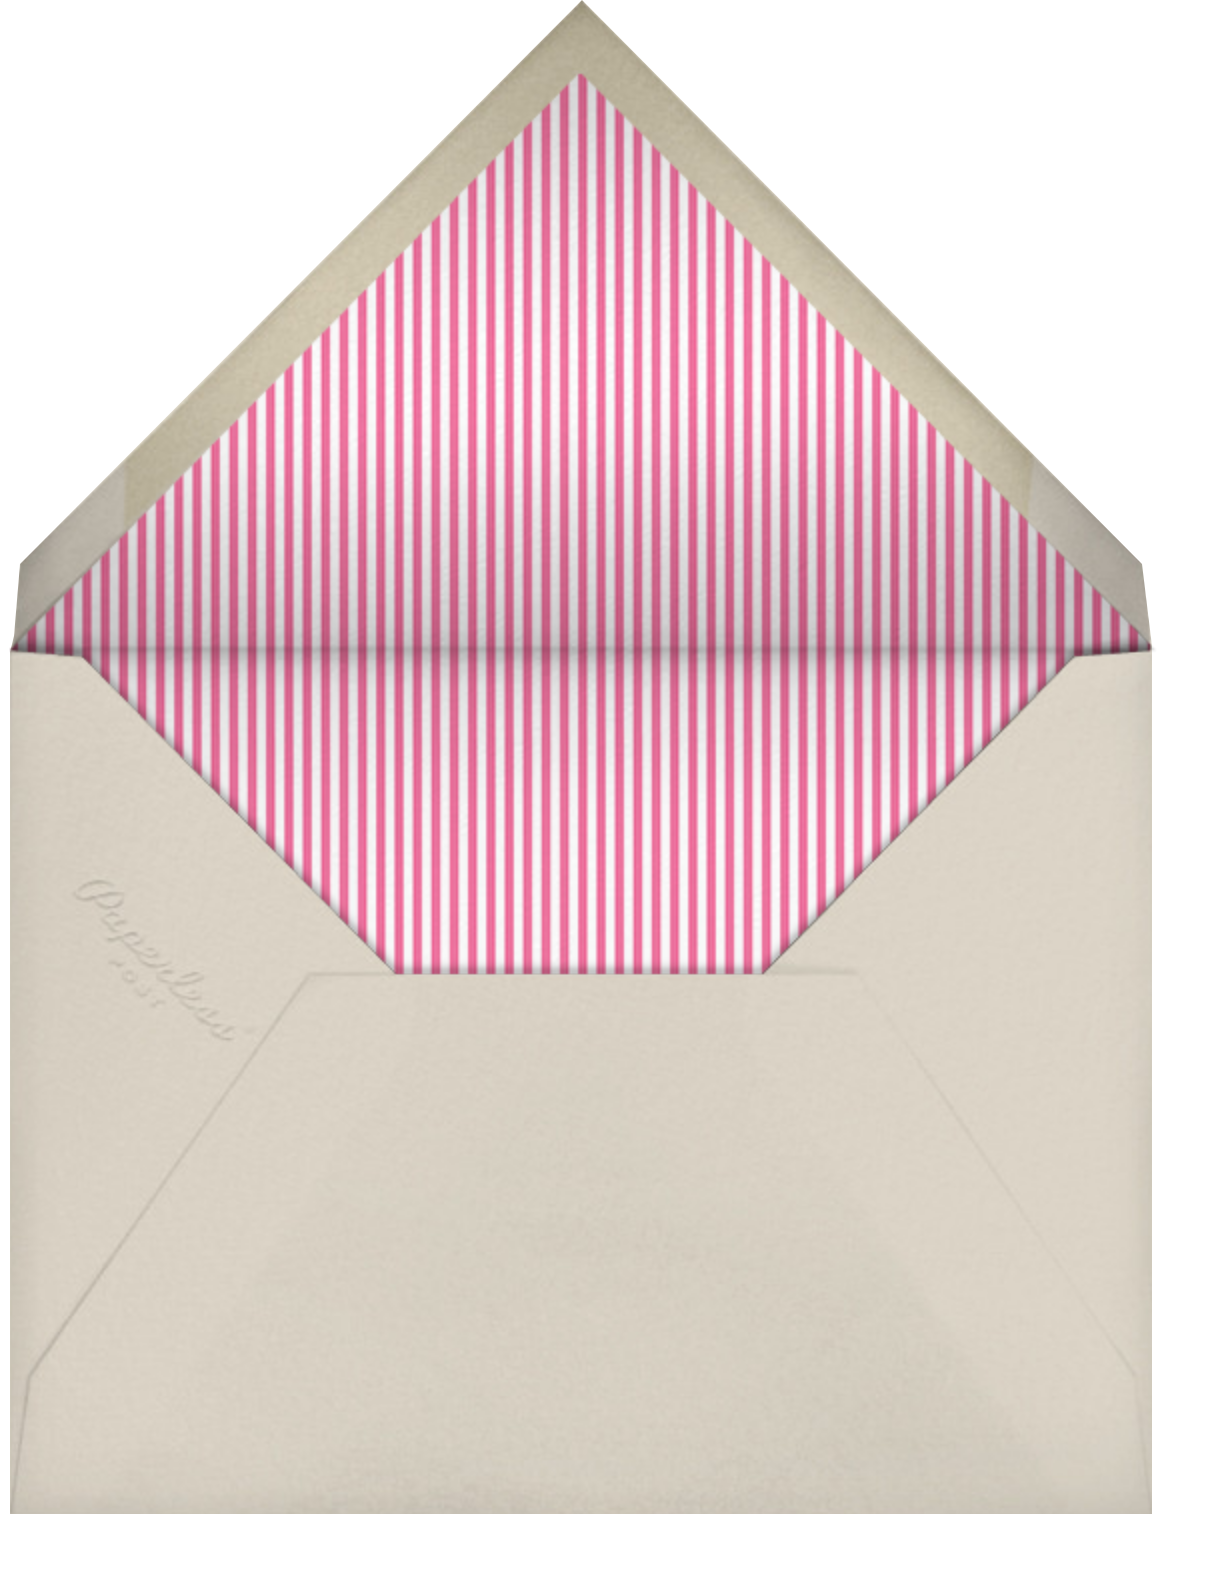 Ring Around the Daisy - Pink - Little Cube - Envelope